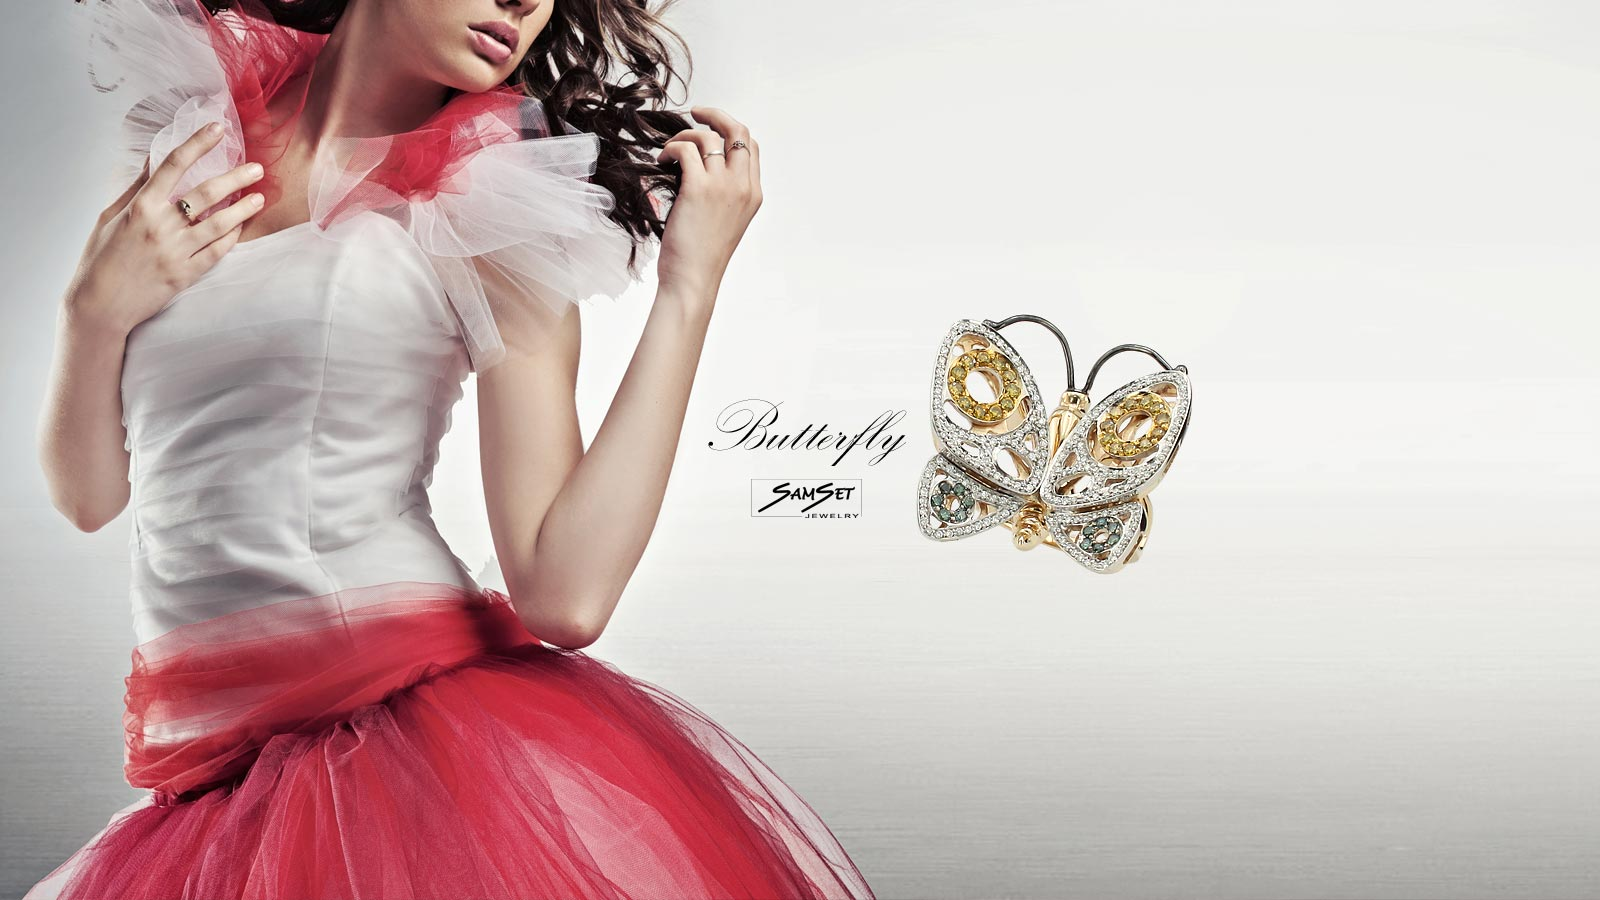 «SamSet» jewelry